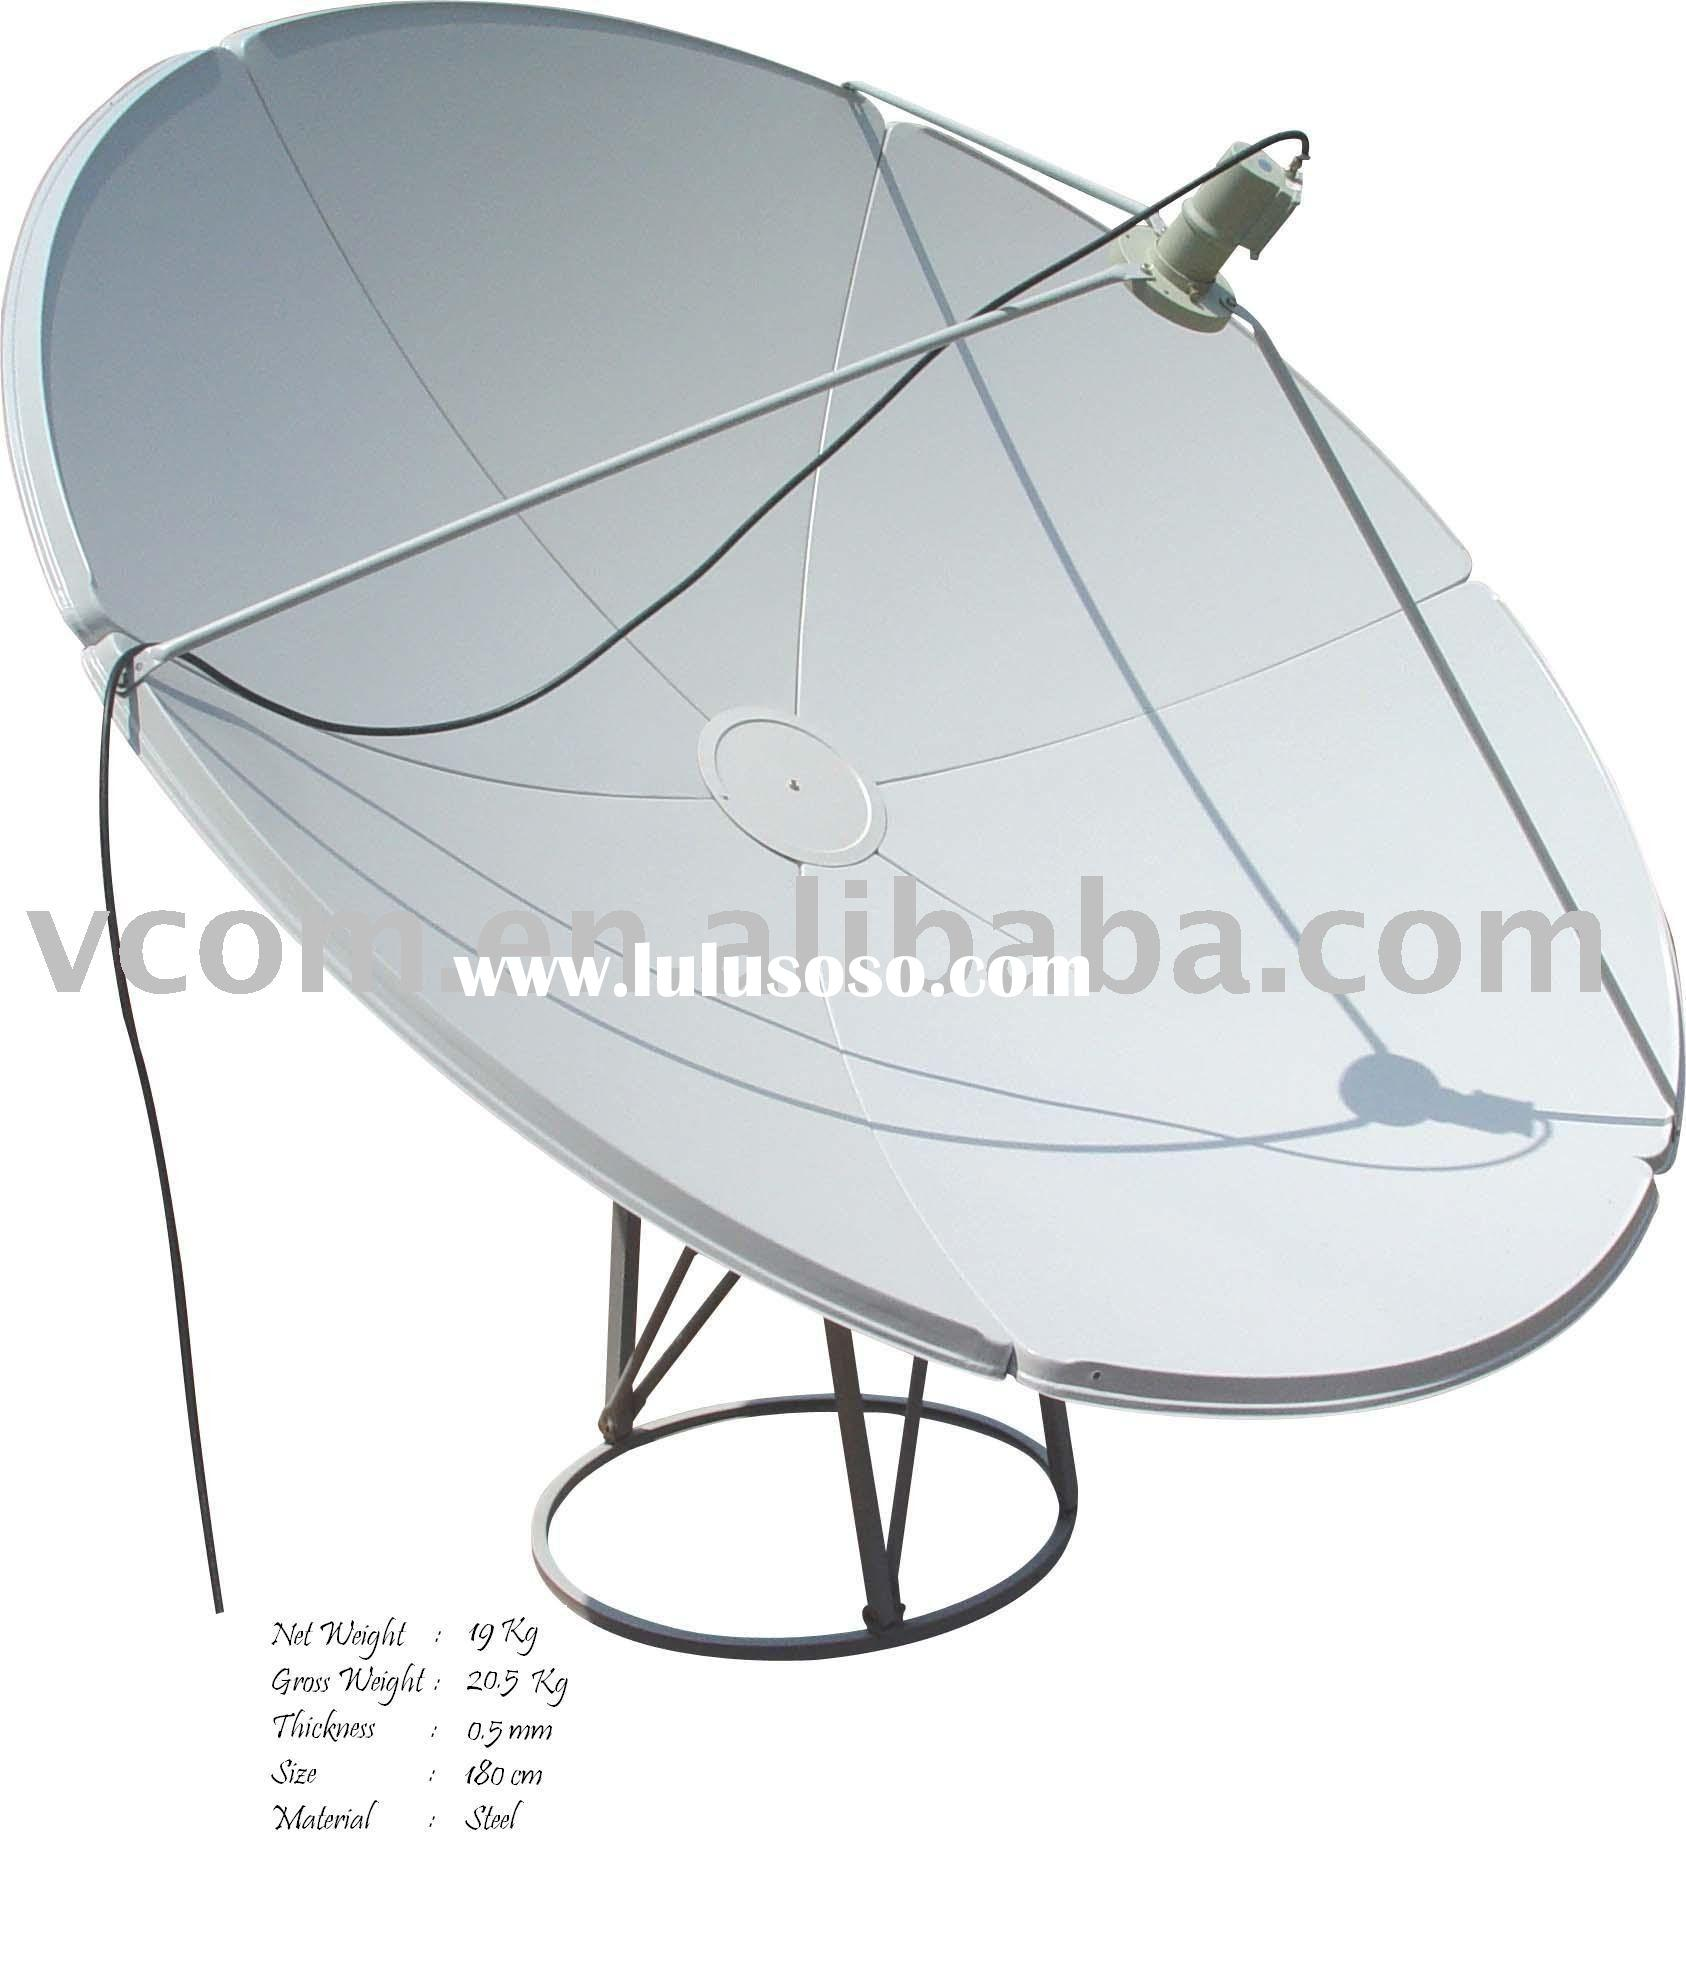 C-Band satellite dish antenna used outdoor